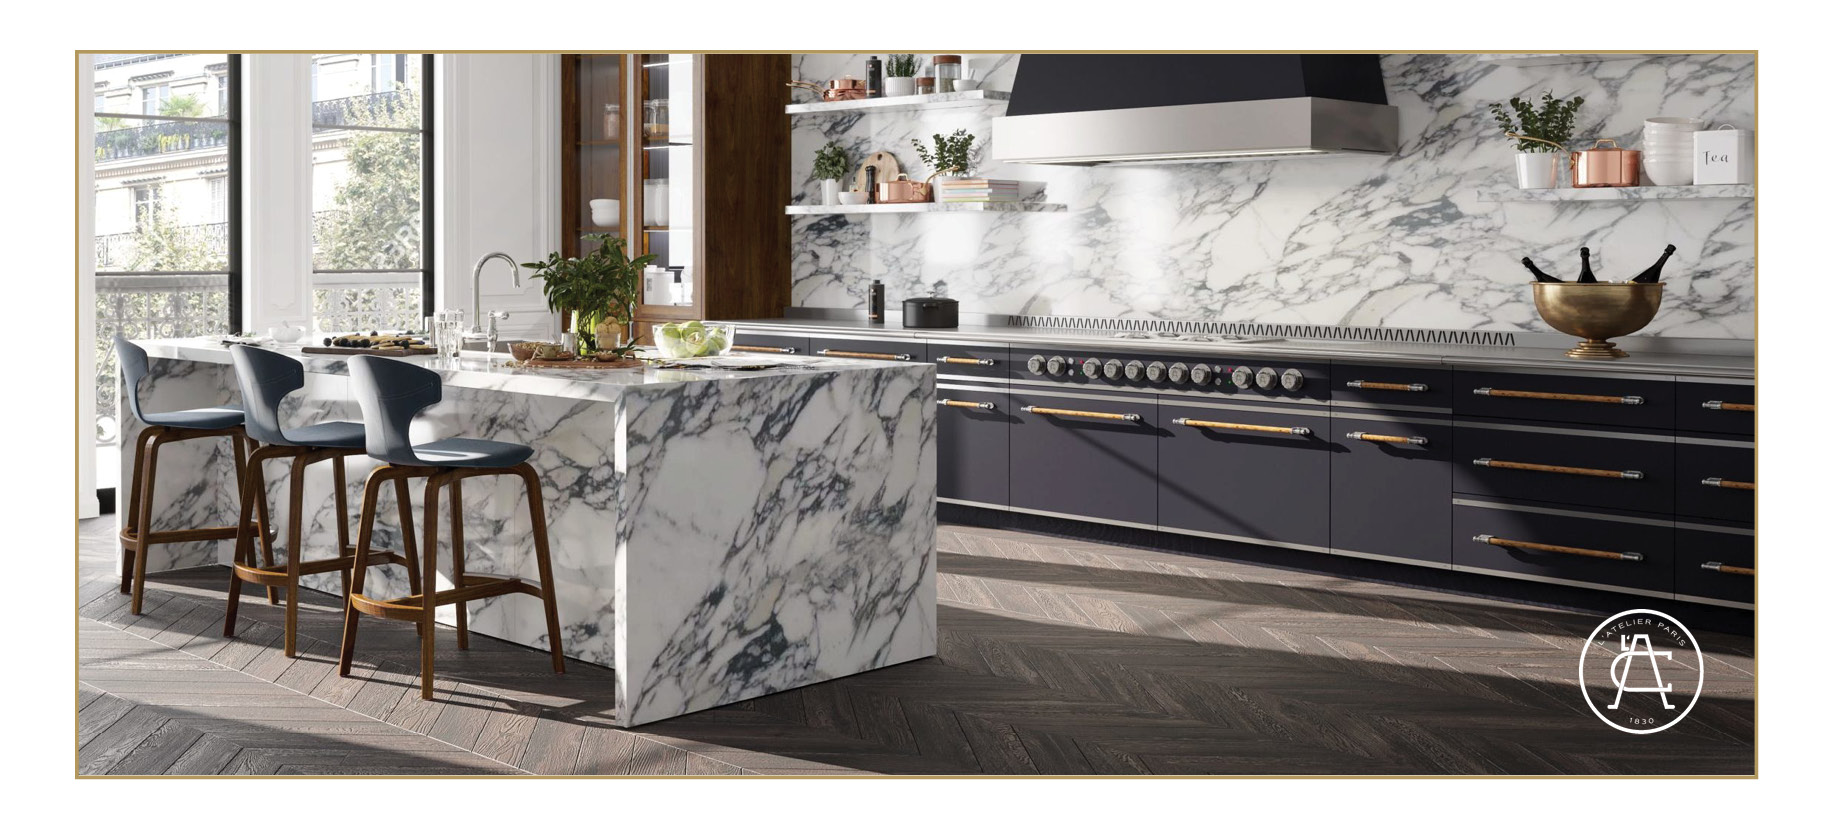 L'Atelier Paris Haute Cuisine La Grande Cuisine Professionnelle in black with brass accents. Range hood in silver and black. Marble kitchen island with chairs.